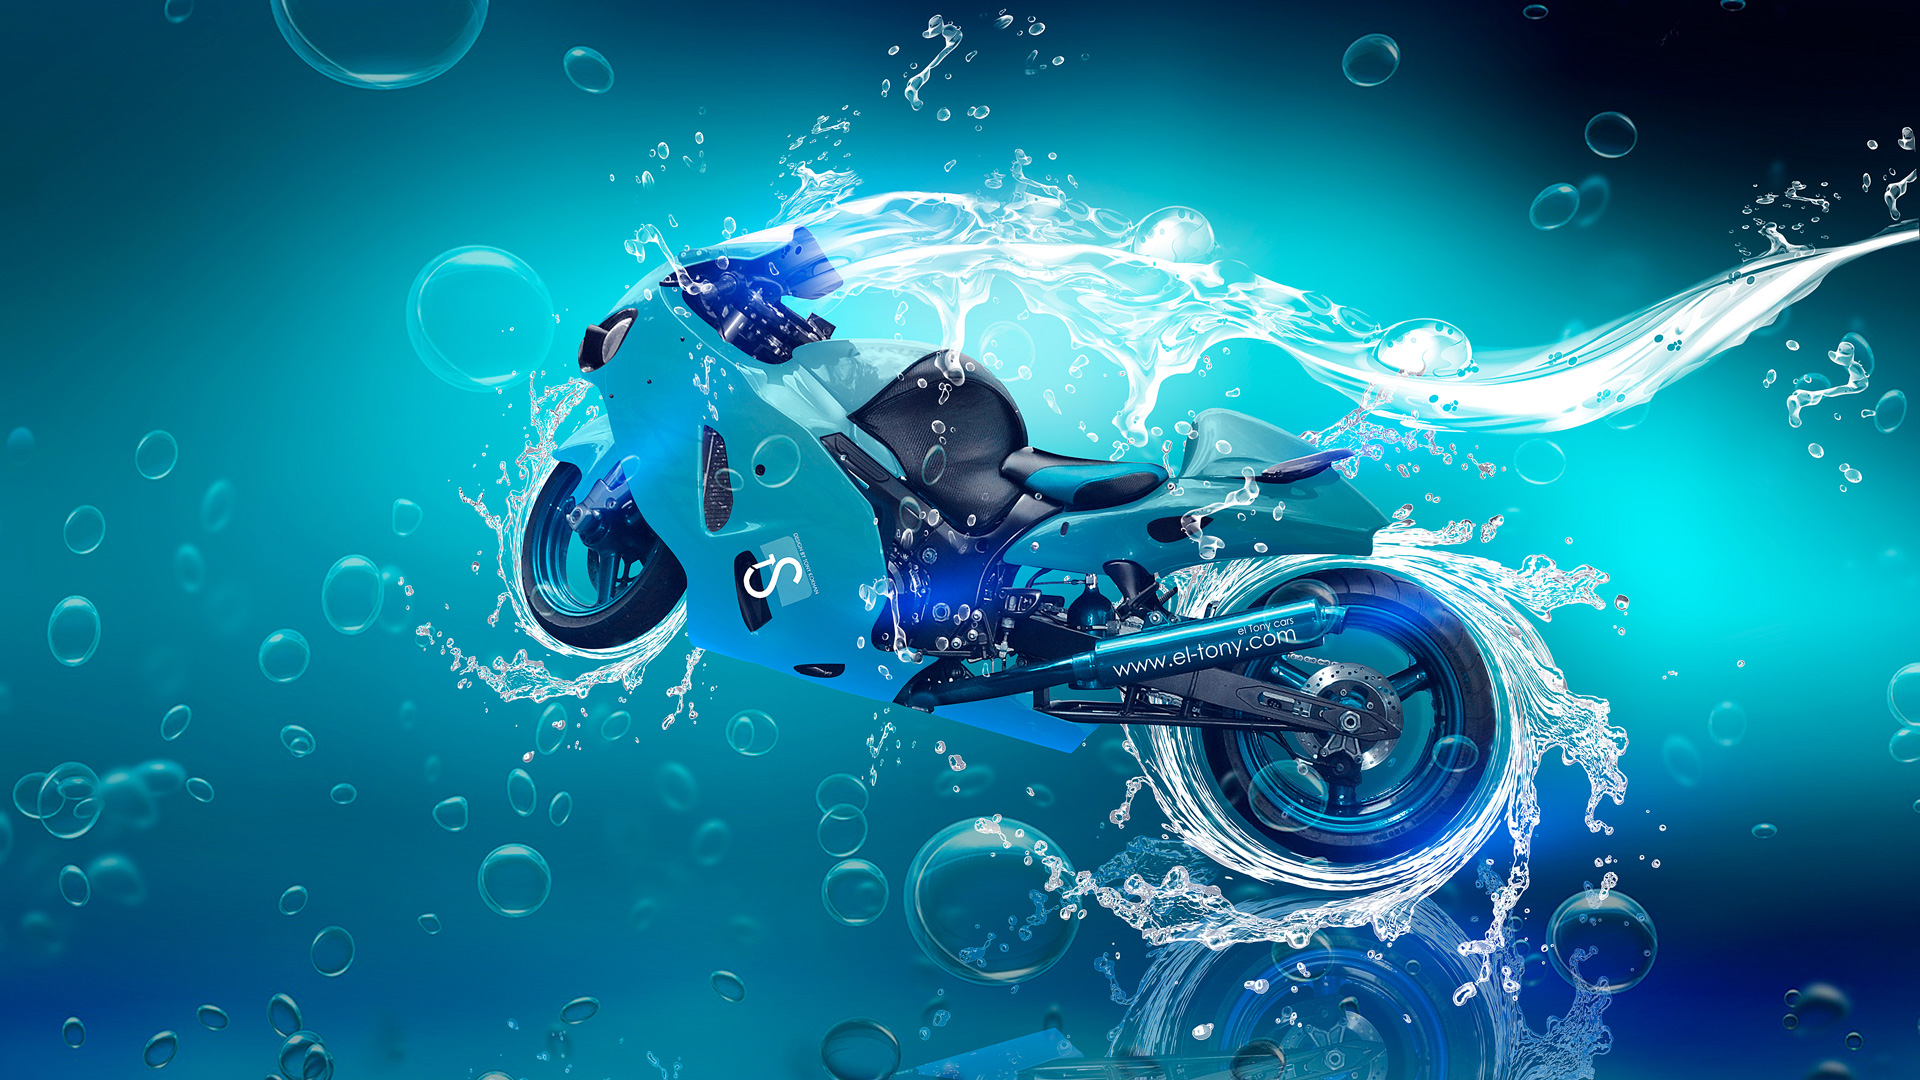 Beautiful Motorcycle Wallpaper | Desktop Background | Pinterest ...